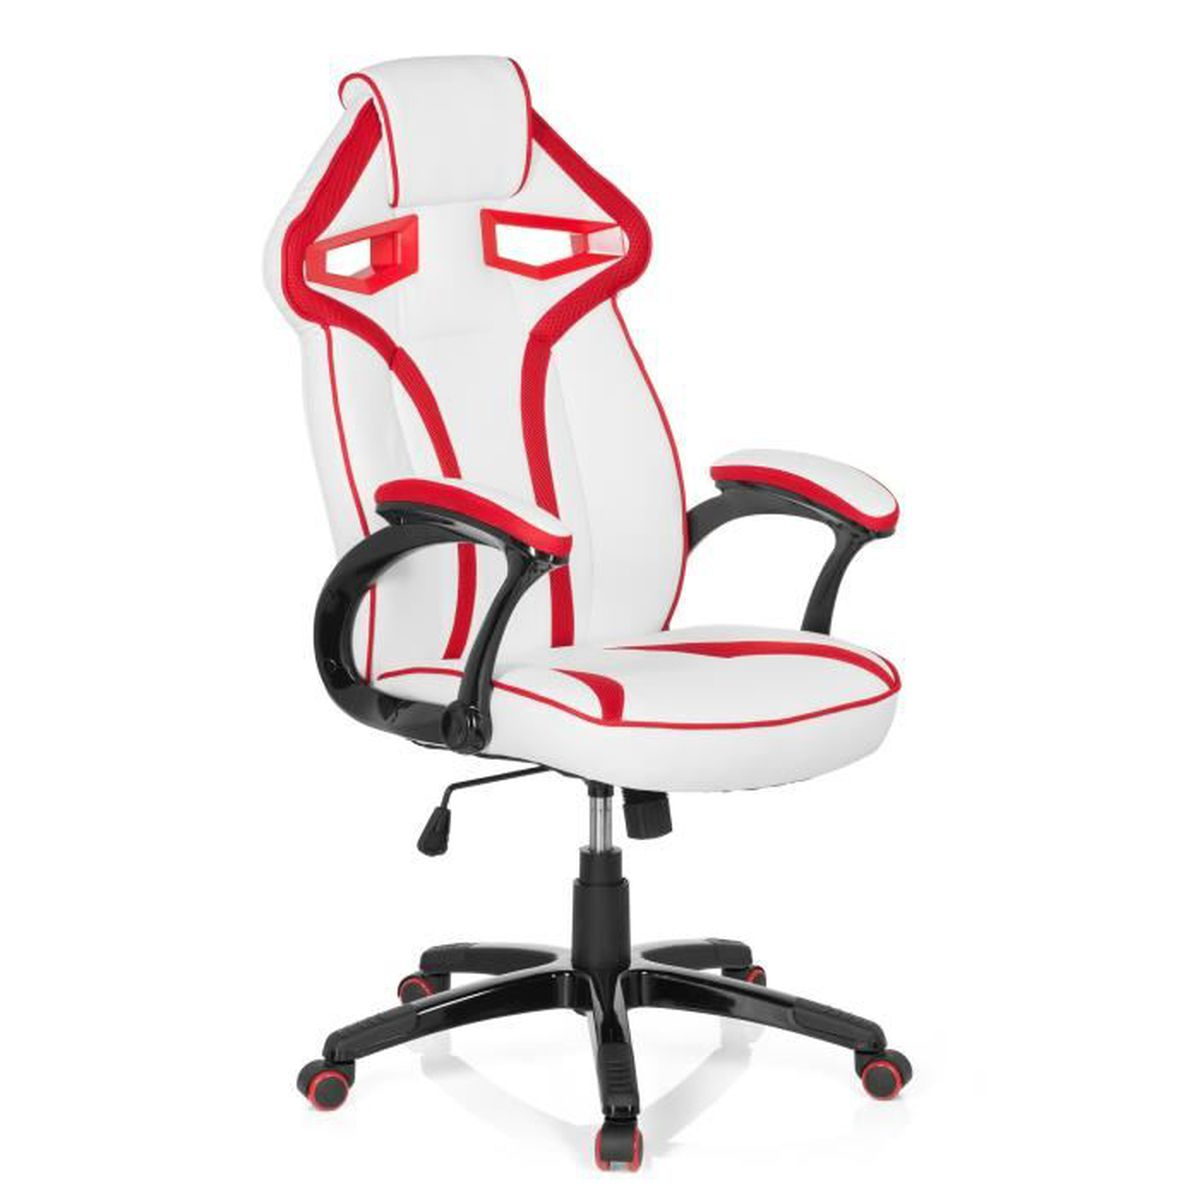 chaise gaming chaise de bureau guardian pu blanc rouge hjh office achat vente chaise de. Black Bedroom Furniture Sets. Home Design Ideas